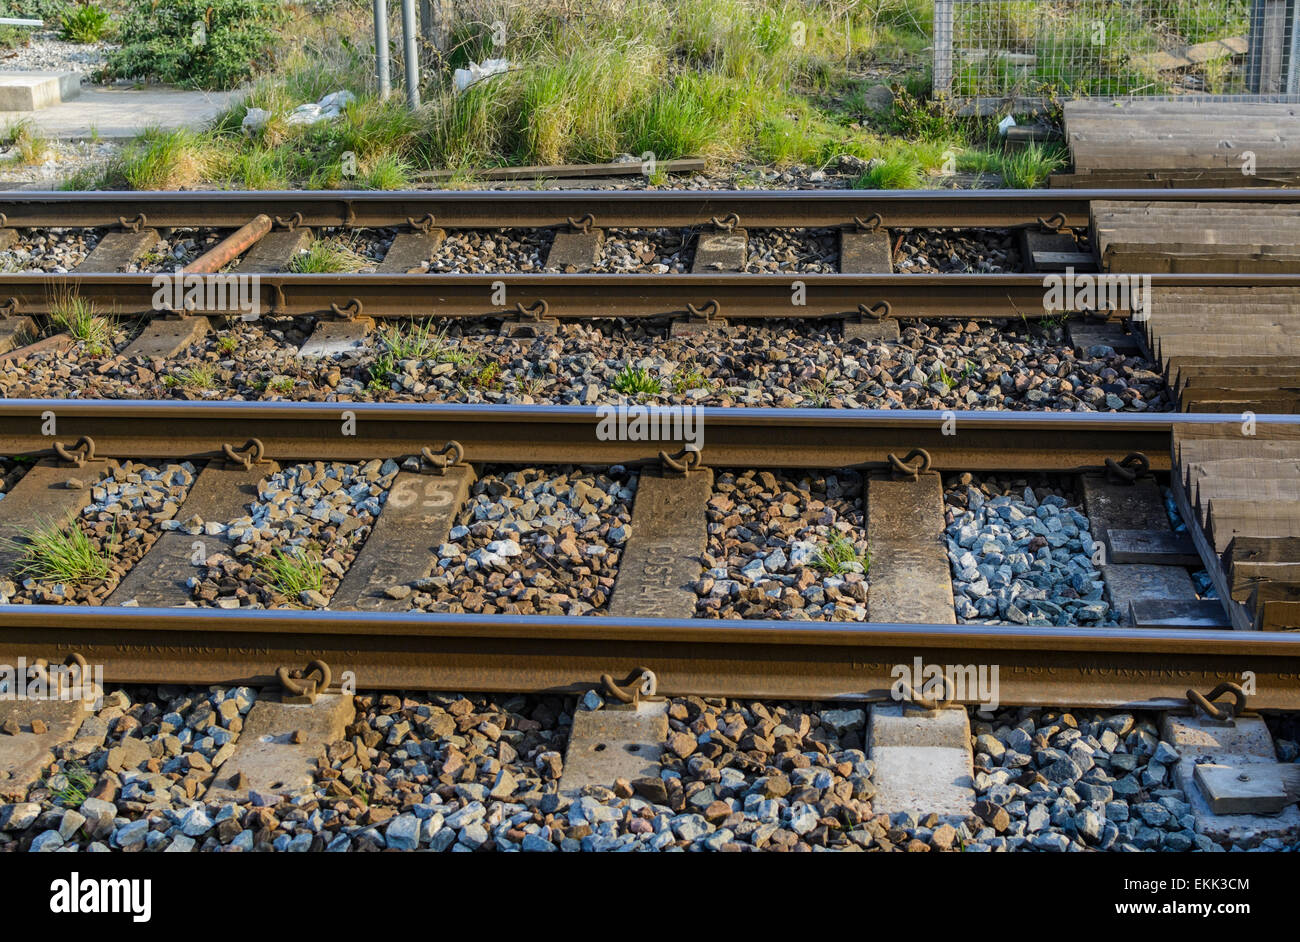 Pair of tracks on a UK railway. - Stock Image